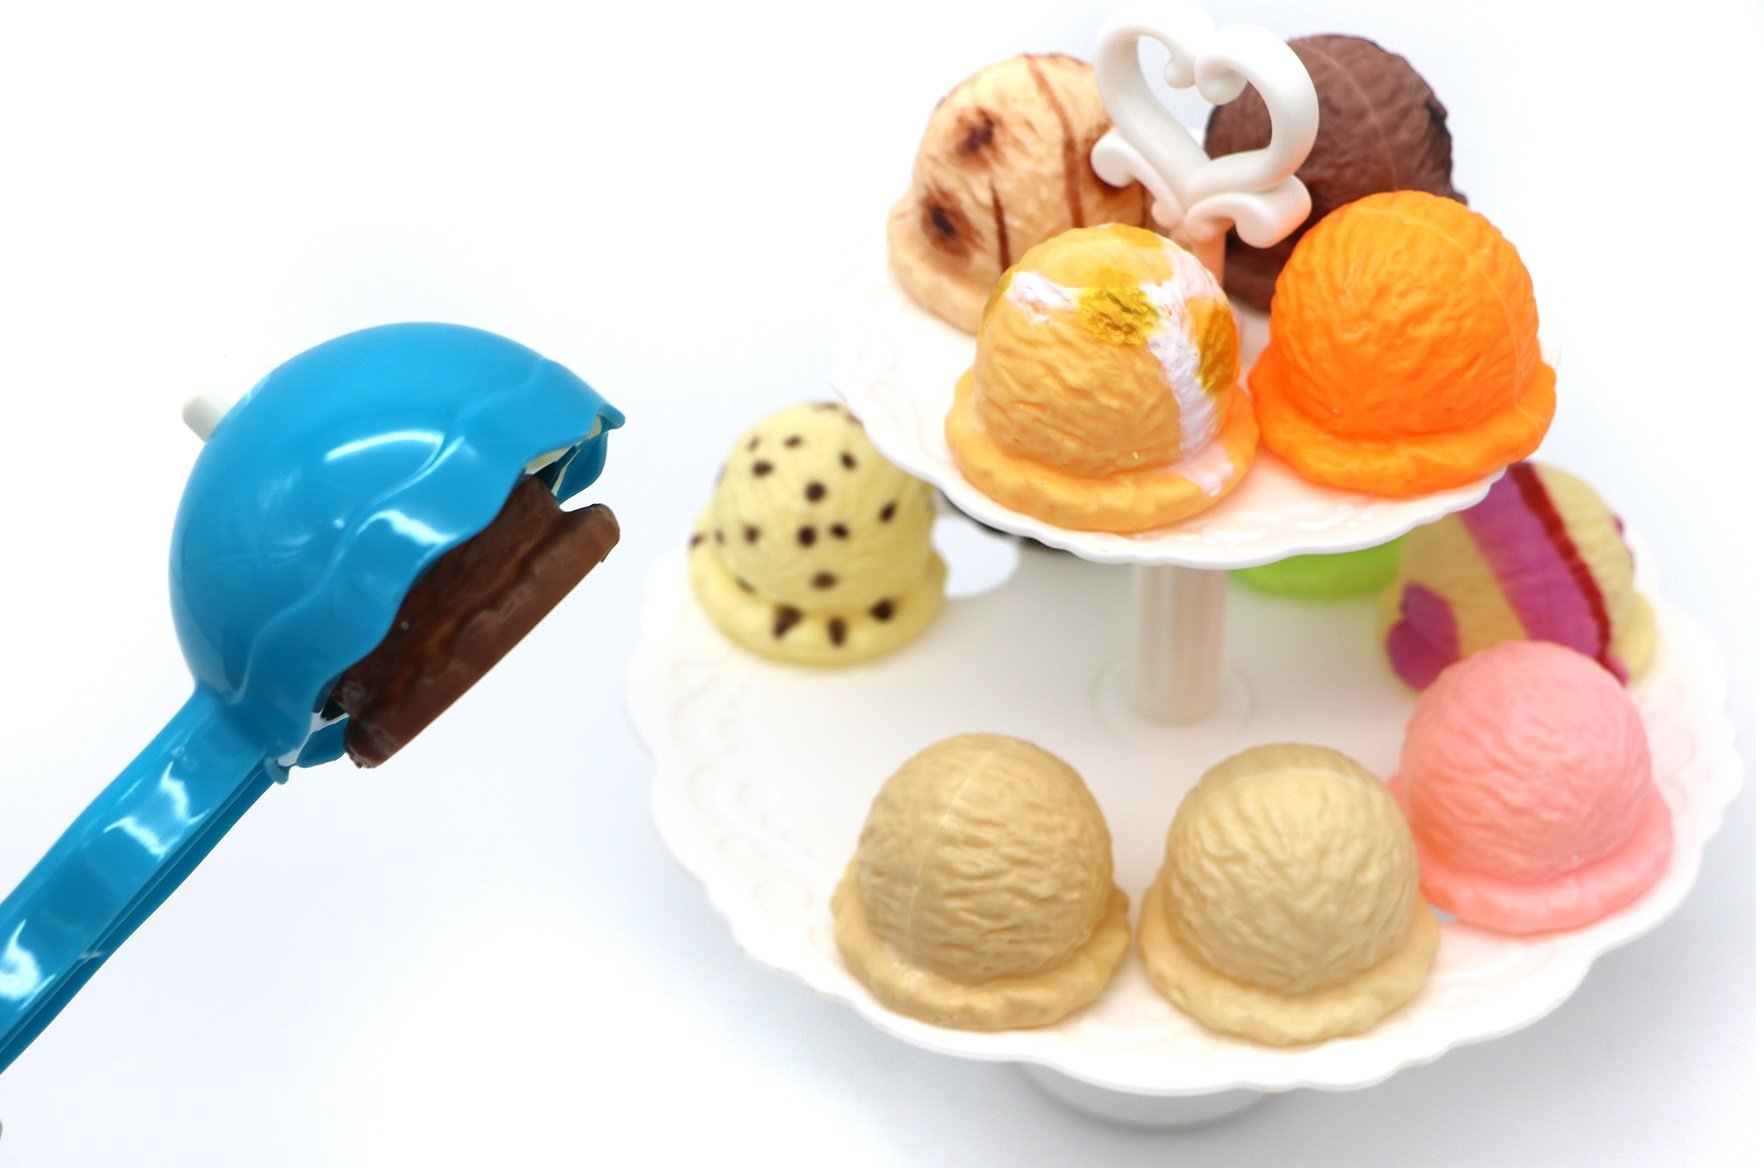 Ice Cream Tower – specifically designed for preschoolers build a long steady ice cream tower inserting each colorfully flavored ice cream topping, piling up with a scoop, do not let it tumble